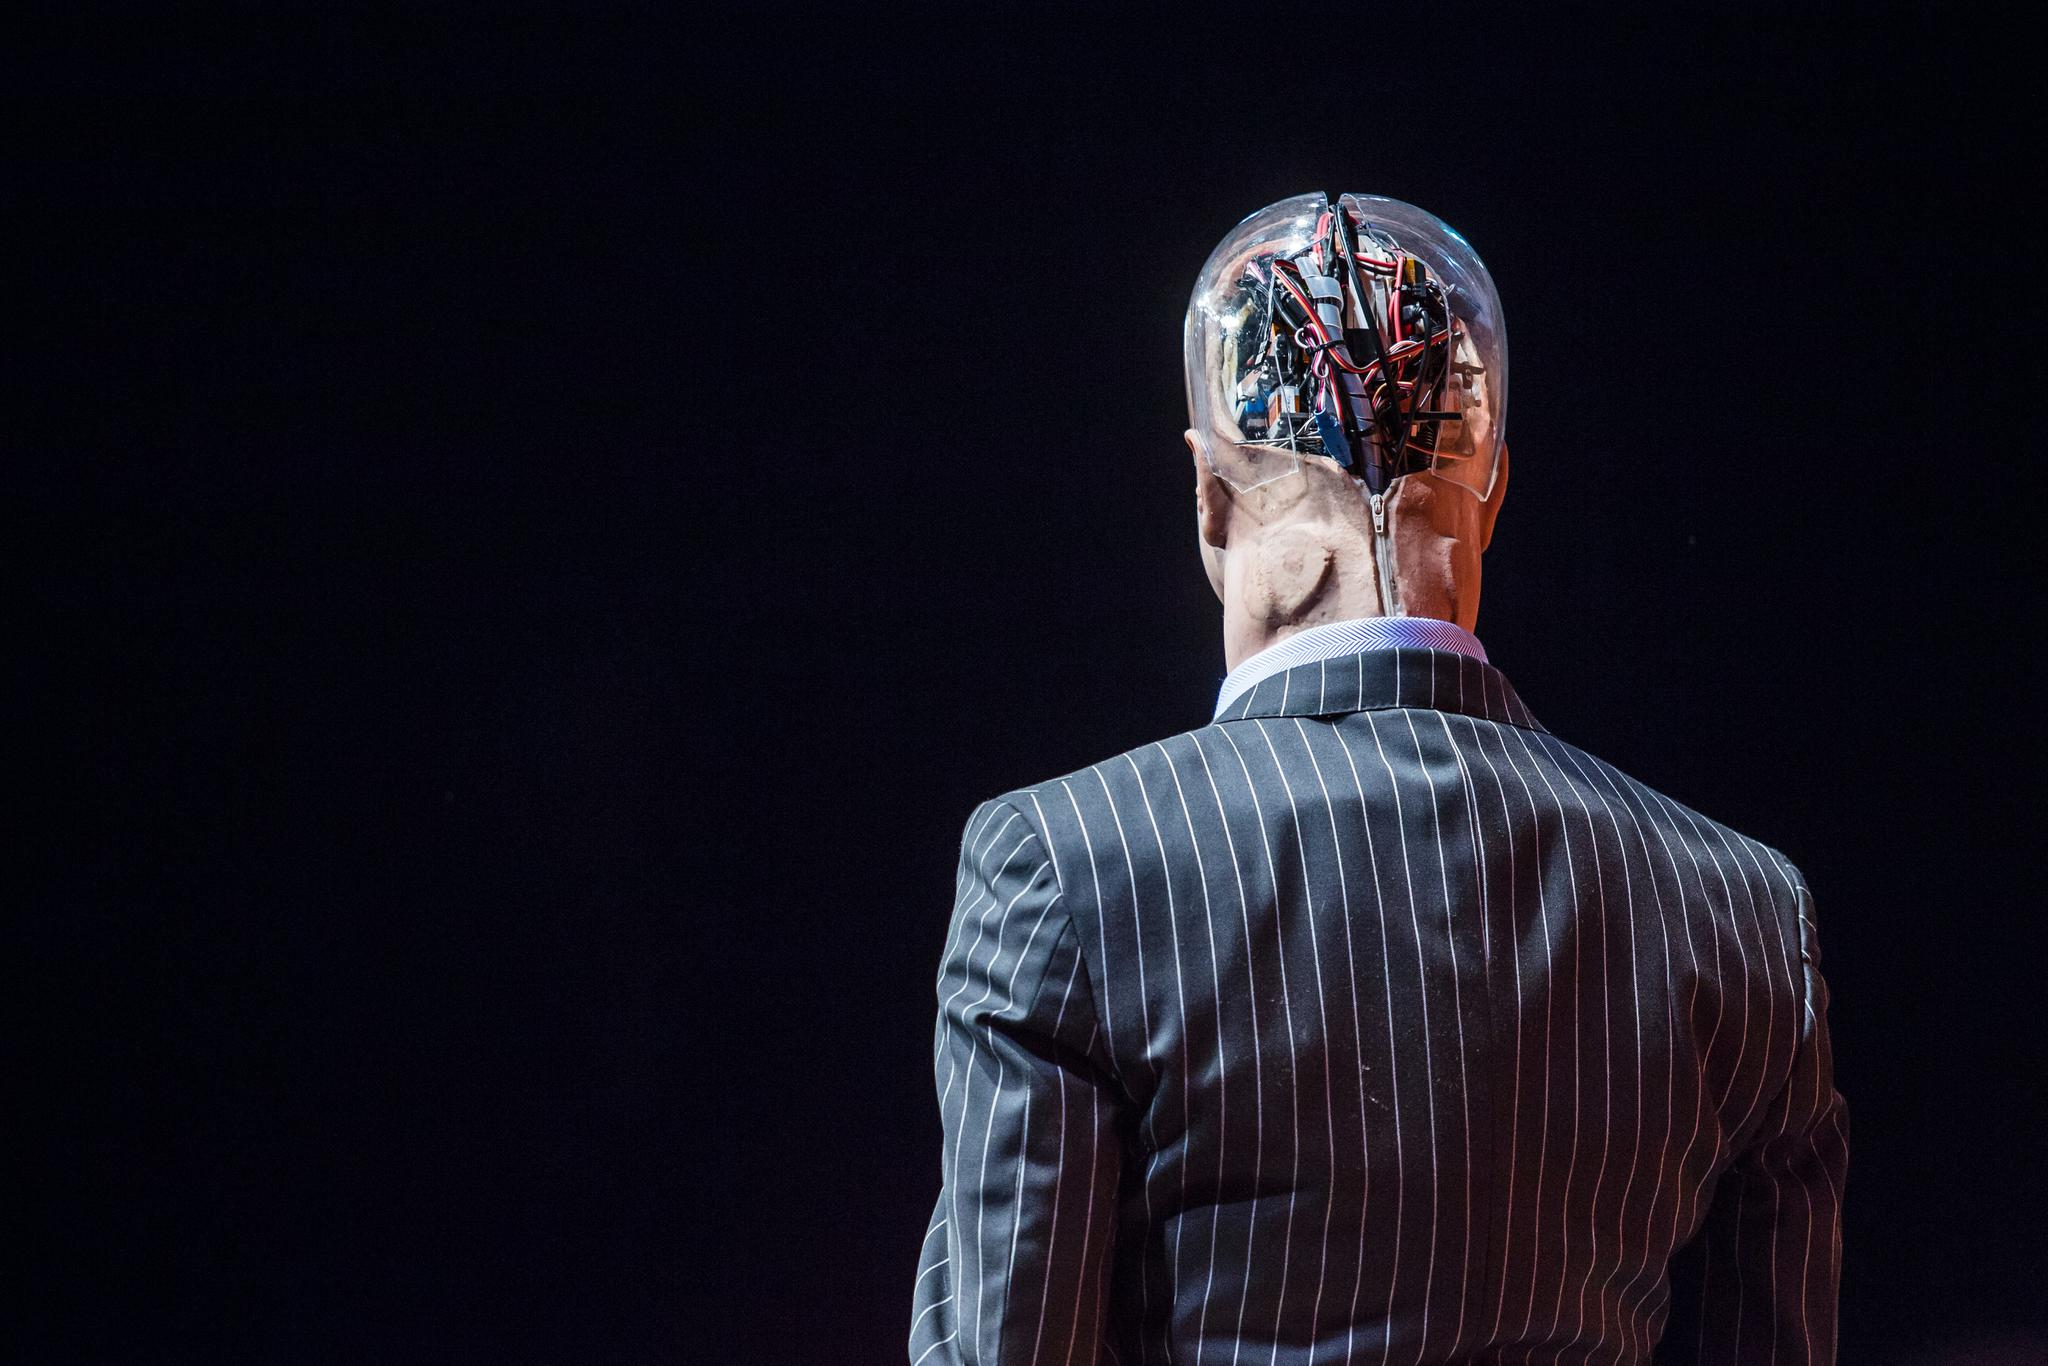 Artifical Intelligence is no longer a futuristic concept. Bots can already debate, negotiate—and lie—like humans.